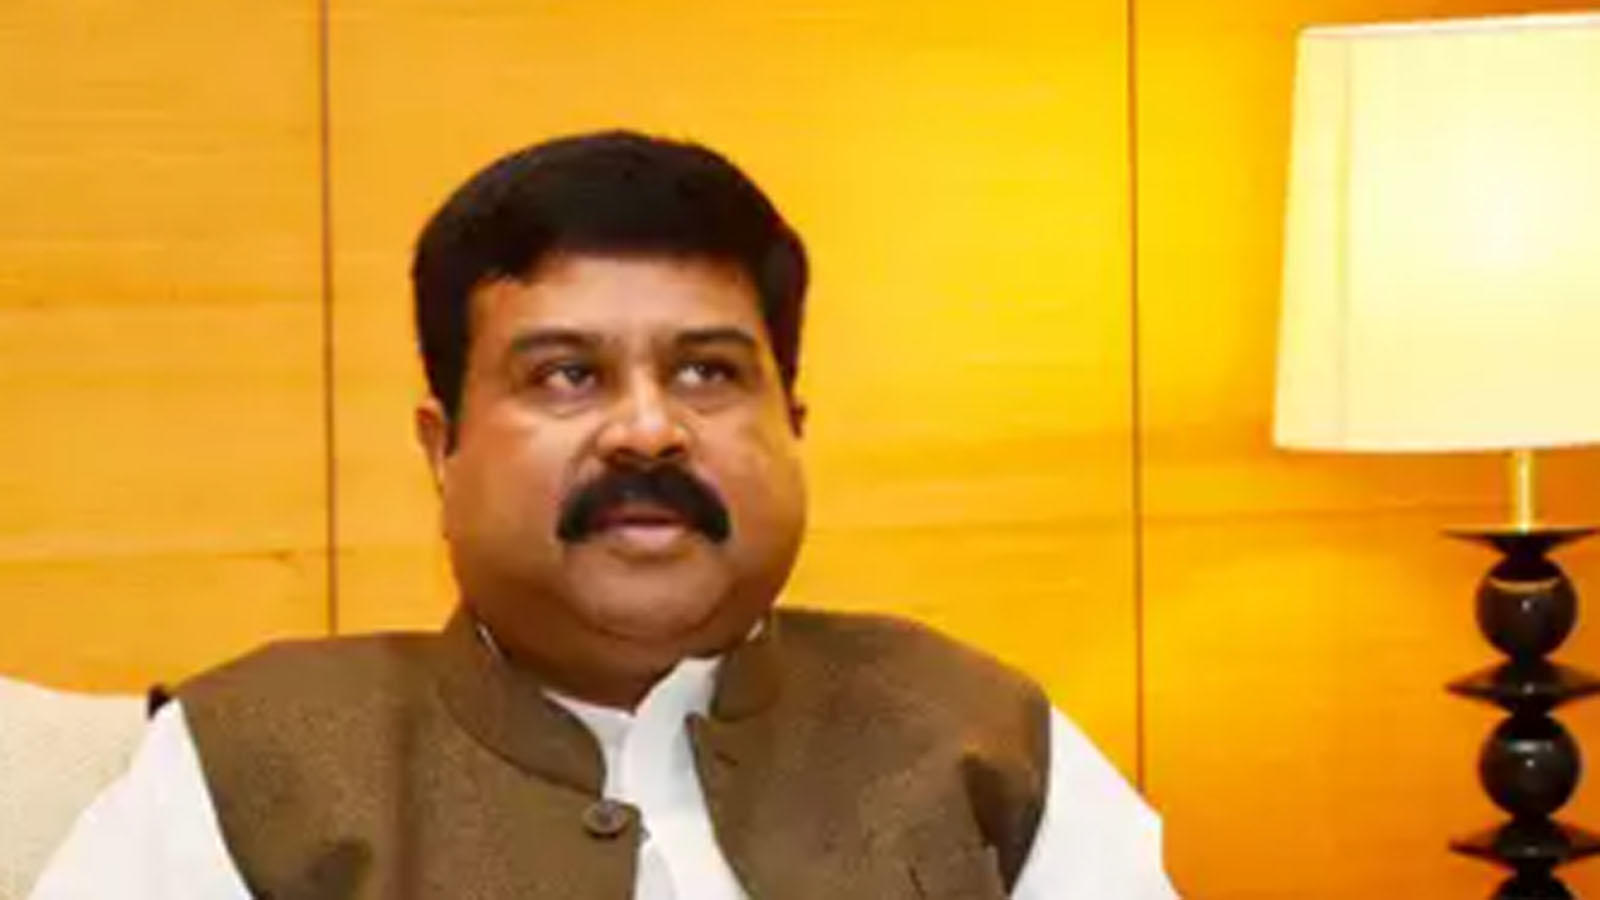 fuel-price-rise-dharmendra-pradhan-lashes-out-at-congress-asks-why-not-reduce-vat-in-their-states